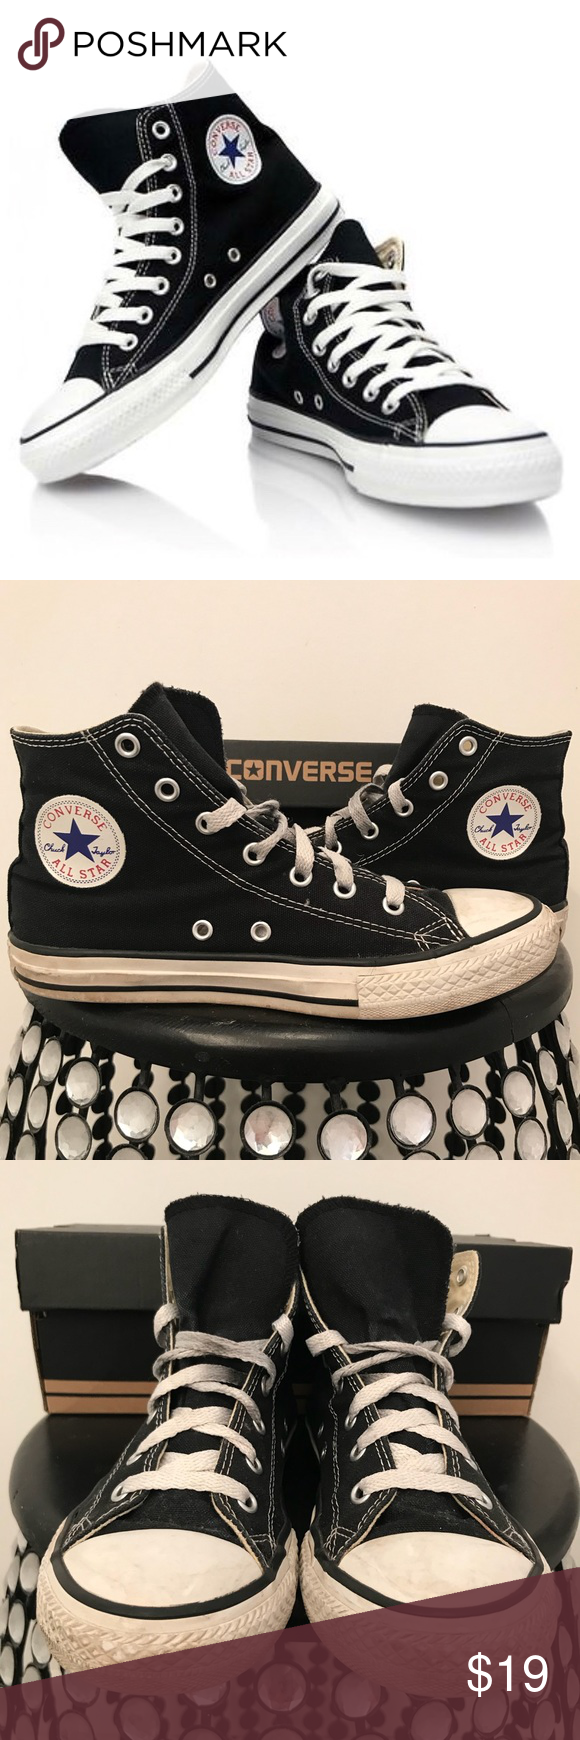 939f78f55b36 Converse High Tops (Youth Size 3  Women s Size 5) Converse high tops fits youth  size 3 or women s size 5. Used. Good condition. Converse Shoes Sneakers